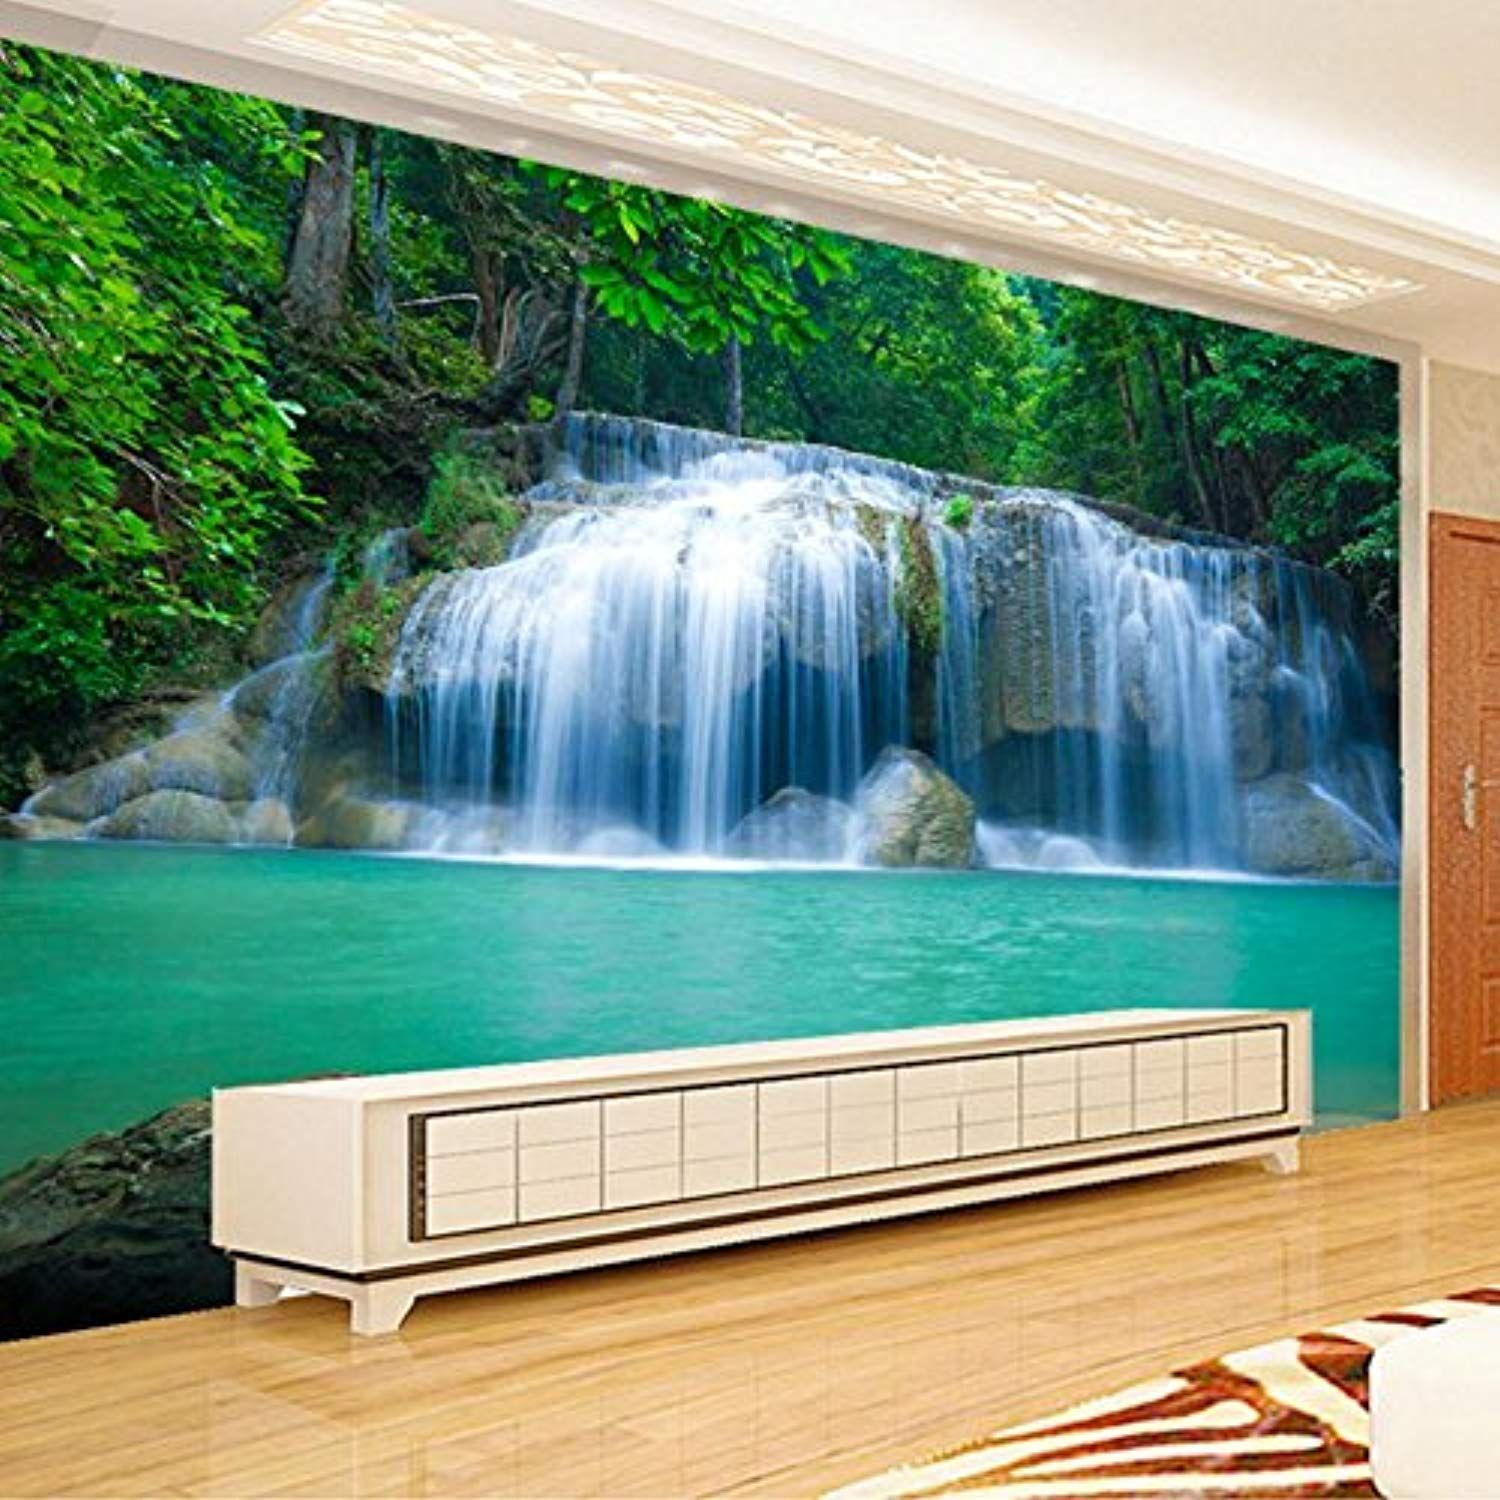 Pin On Paint Wall Treatments Supplies #wall #scenery #for #living #room